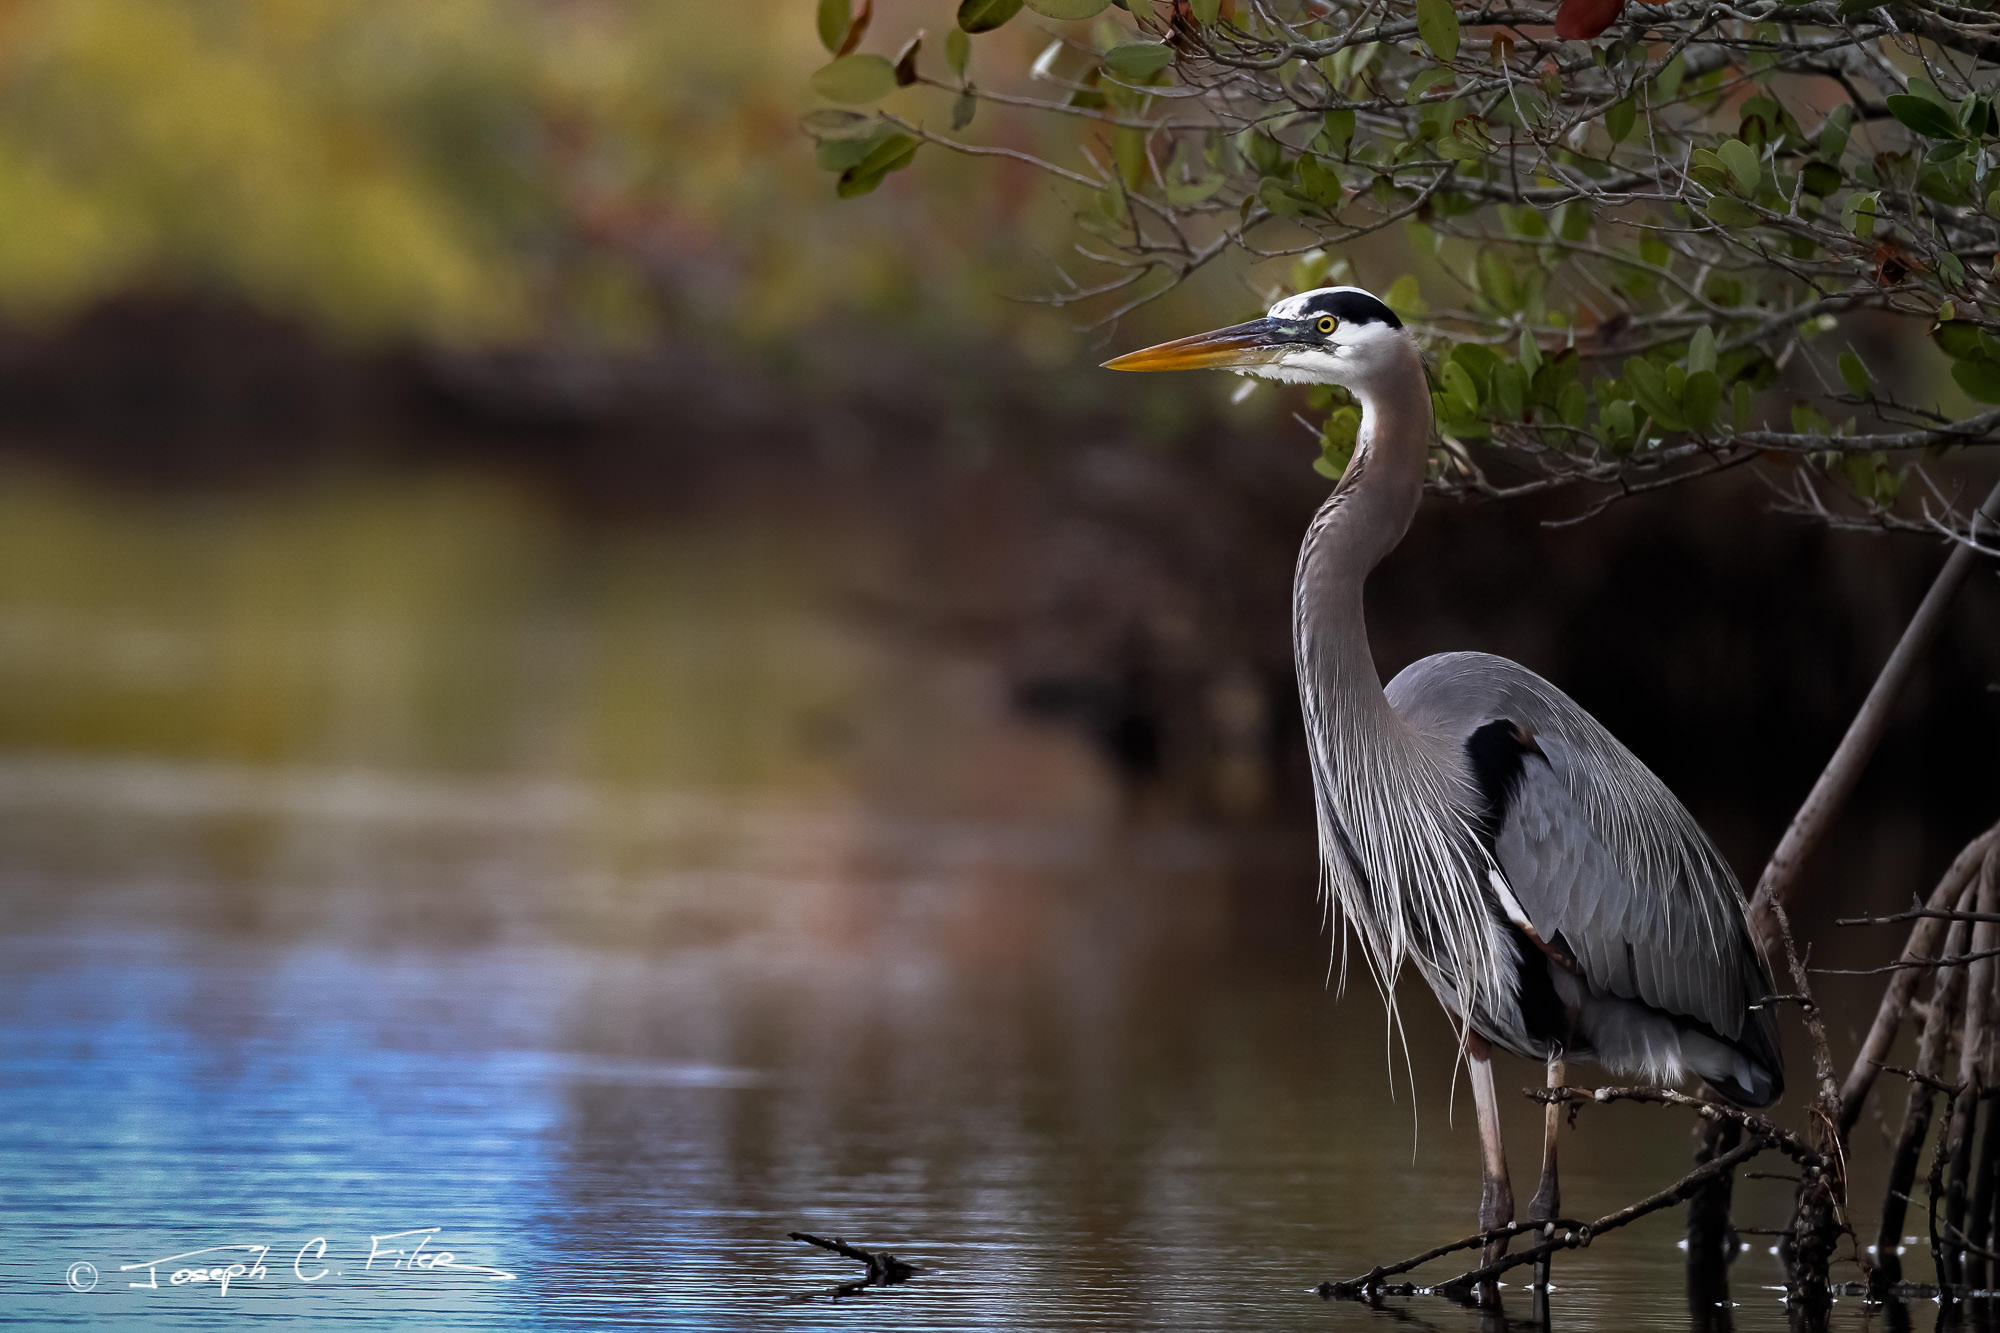 Heron, Great Blue, Great Blue Heron, Florida, photo